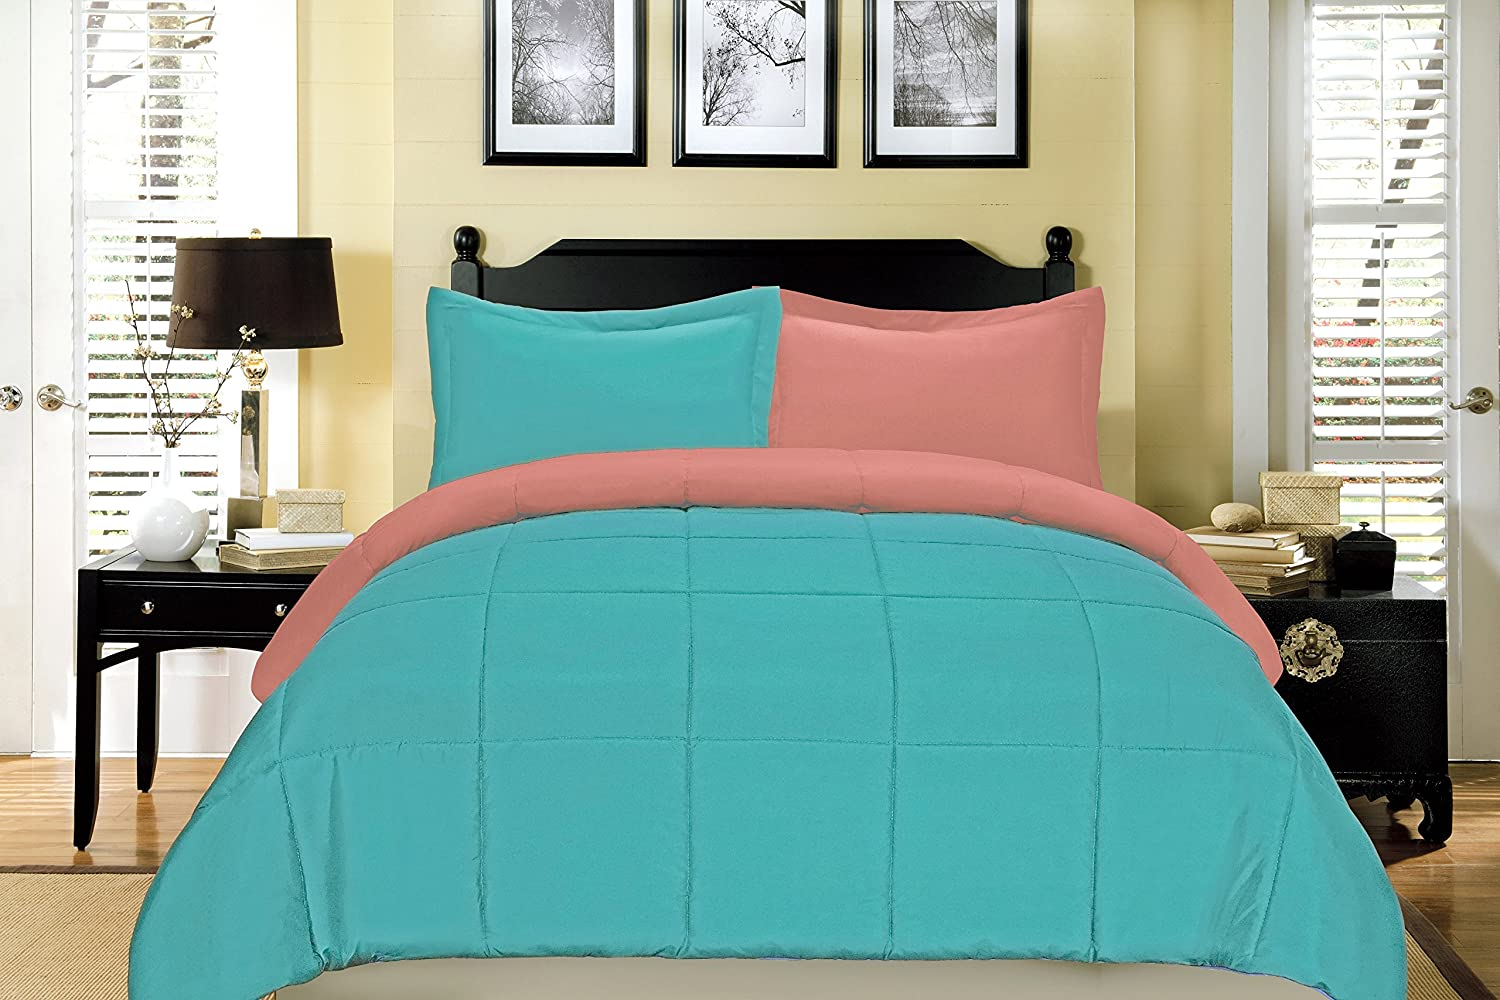 South Bay Reversible Down Alternative Comforter Set, Full Queen, Coral and Aqua